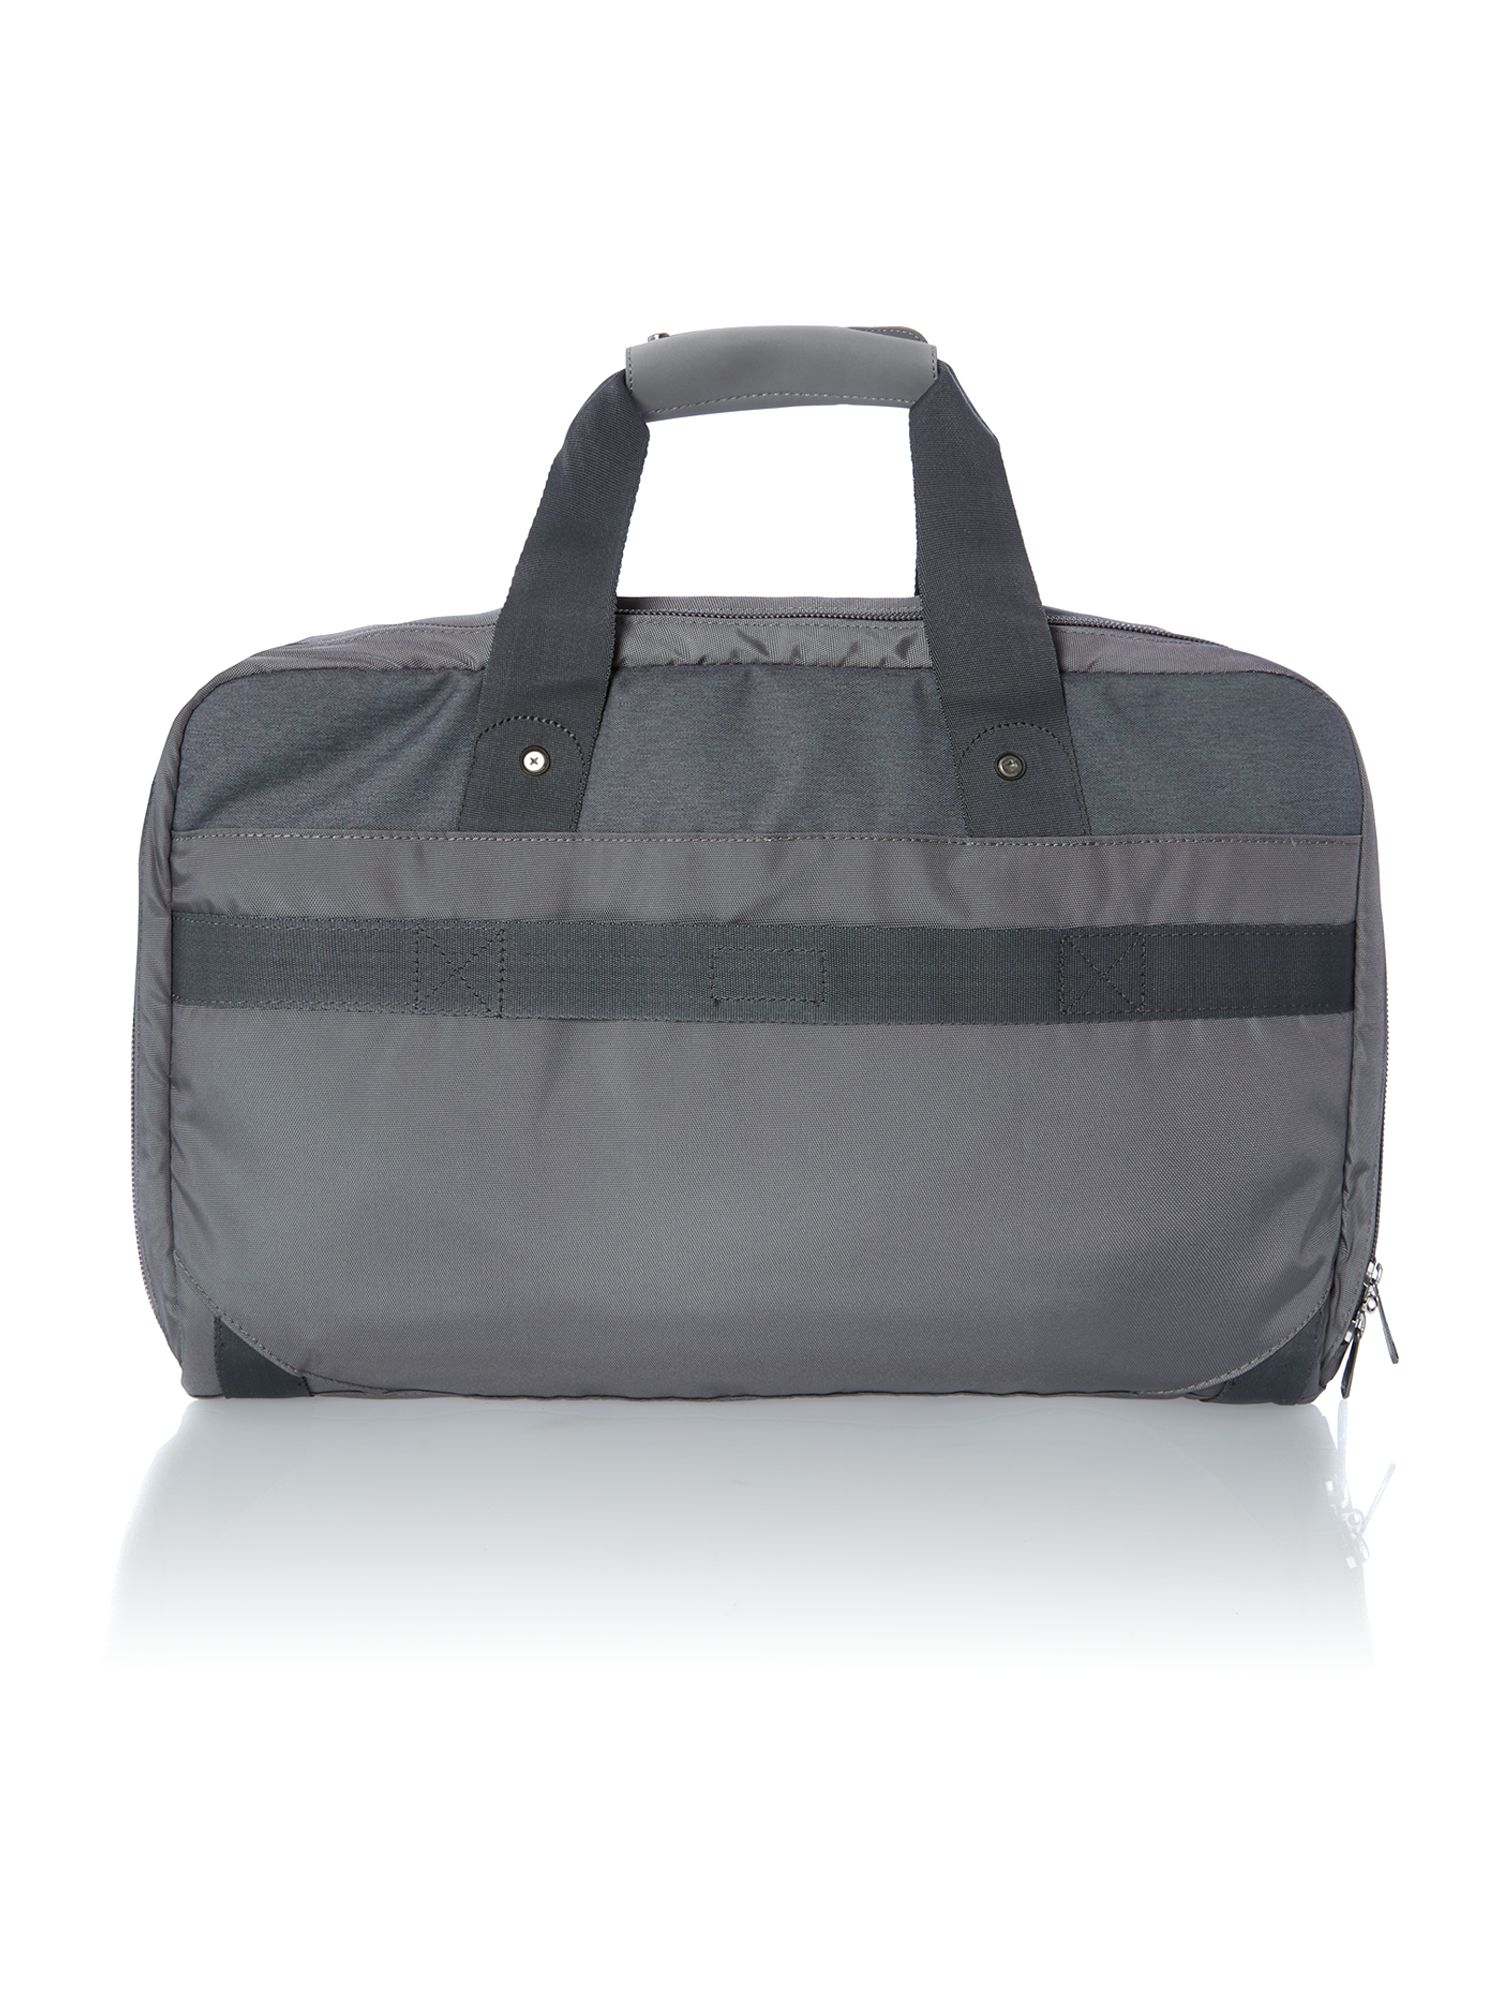 Nix grey soft overnight bag